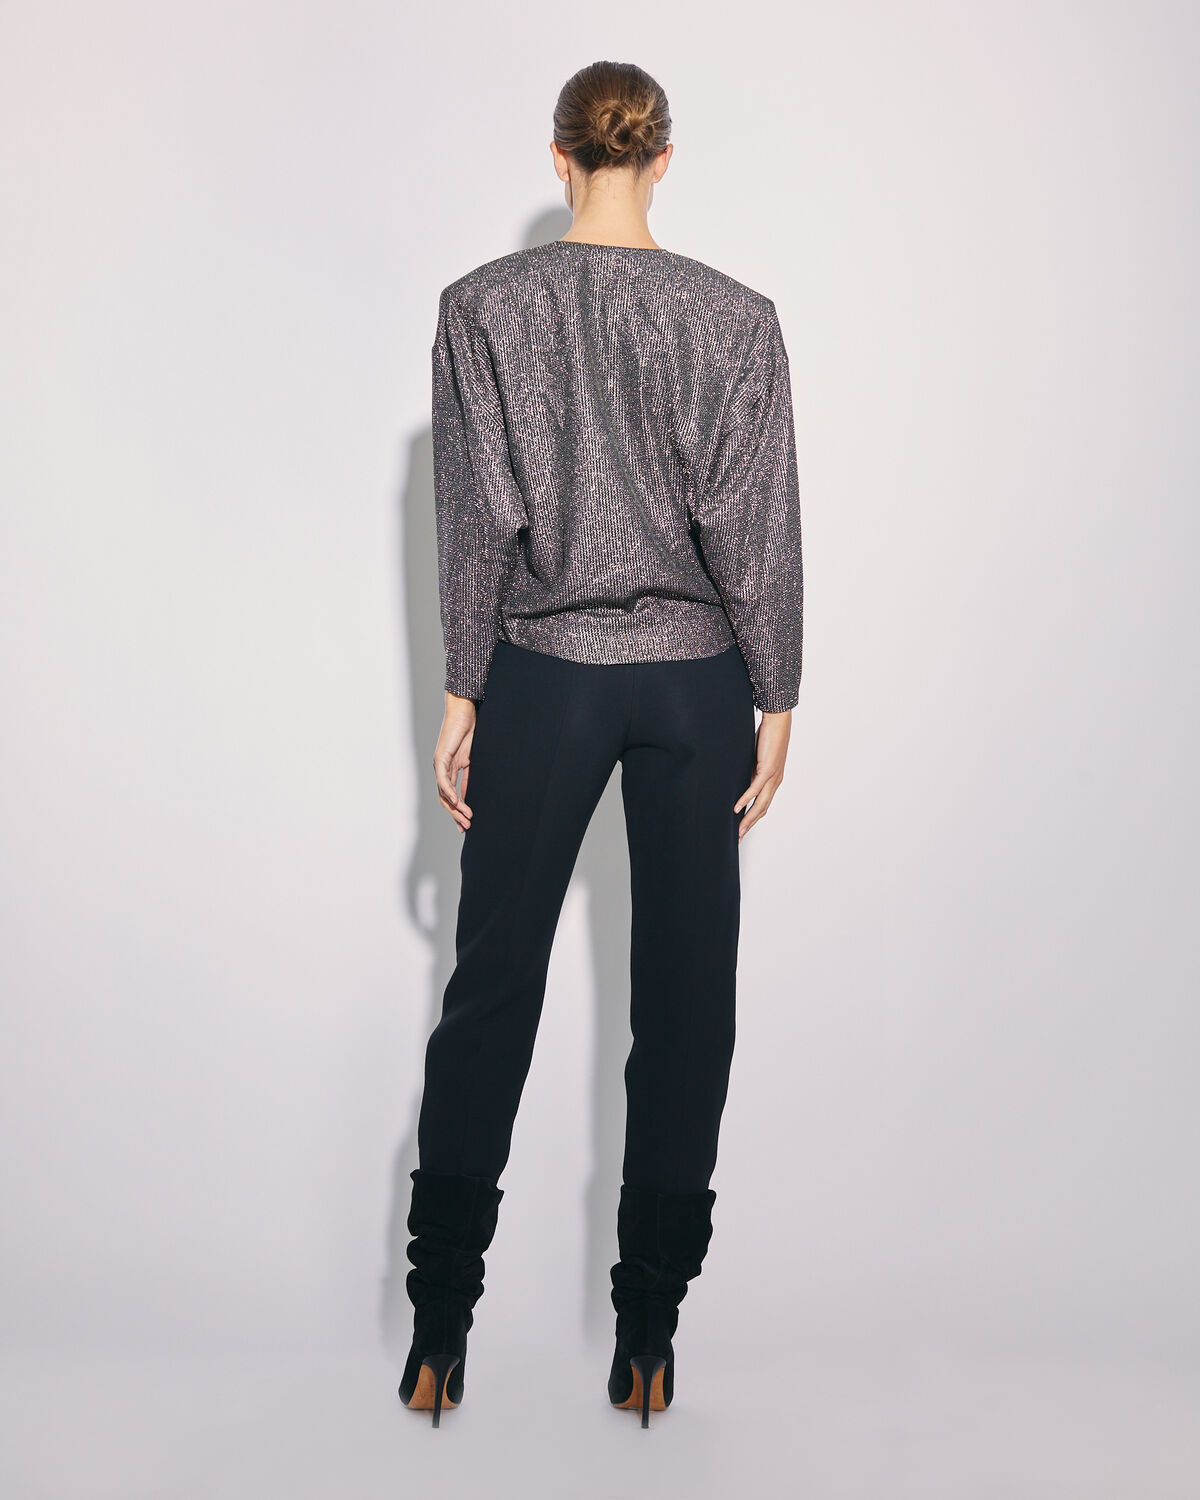 IRO - BANJO METALLIC KNIT V NECK TOP BLACK/SILVER